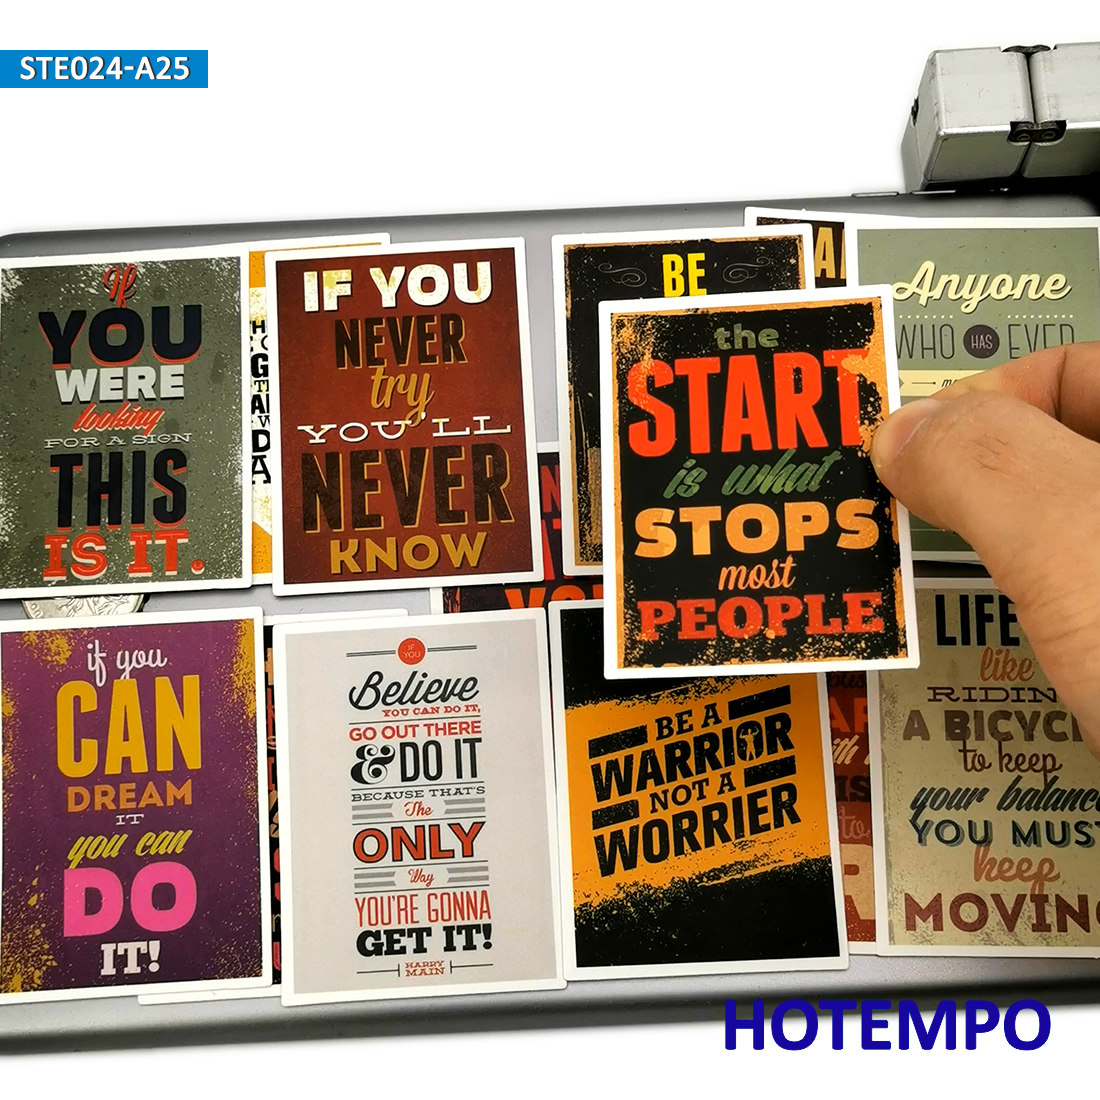 25pcs Fashion Style Positive Energy Slogan Motivational Poster Stickers for Mobile Phone Laptop Luggage Moto Car Decal Stickers